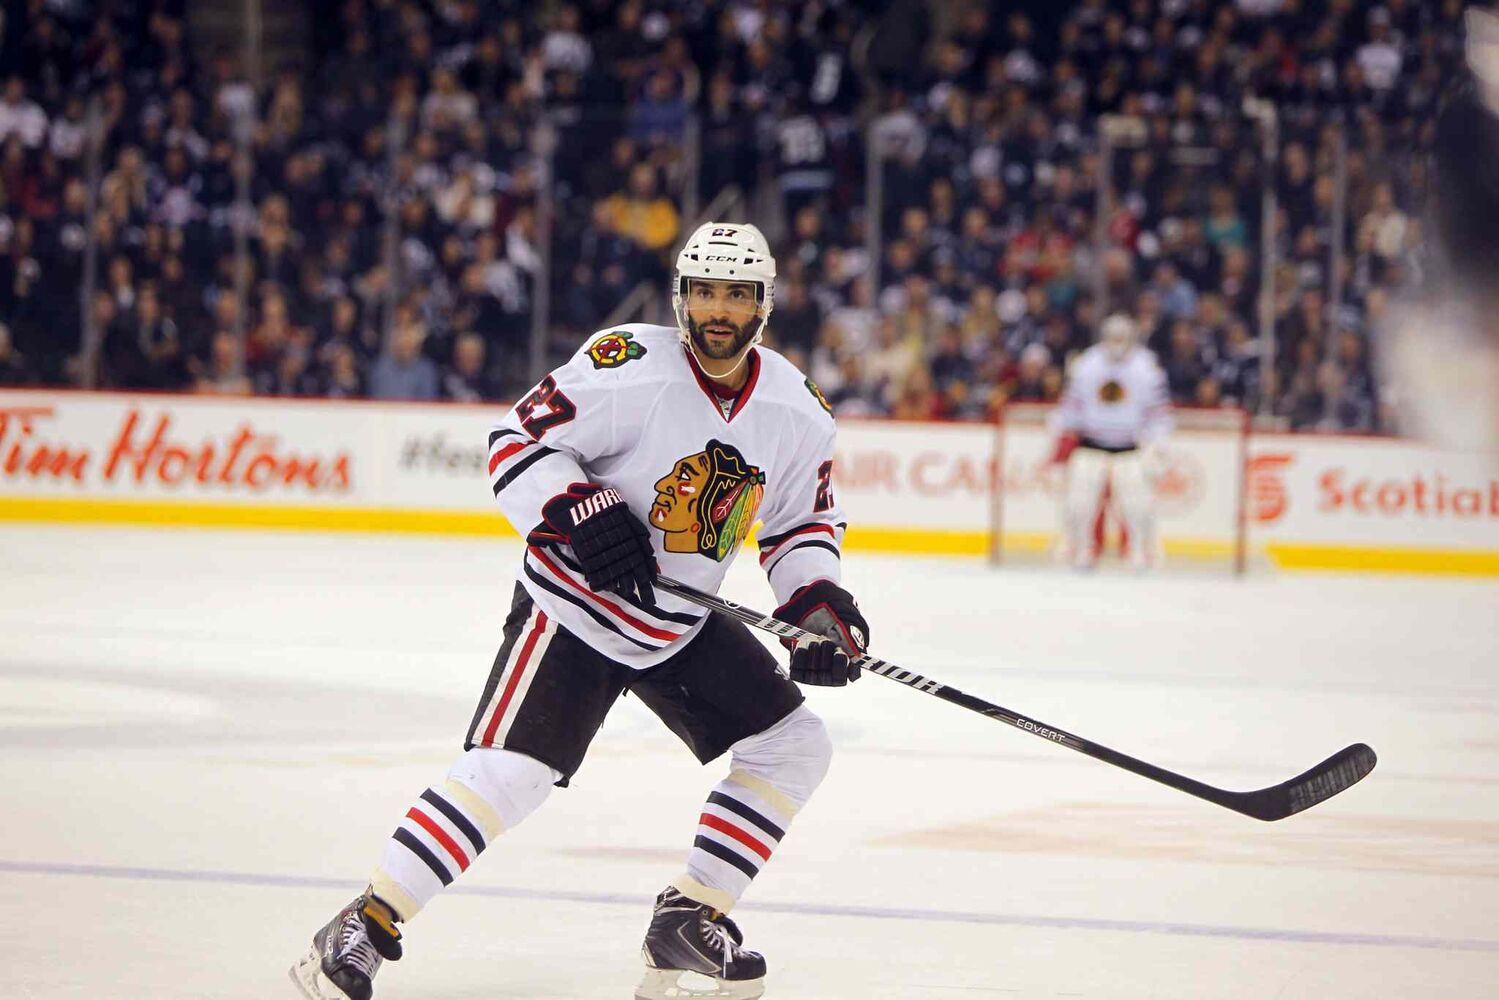 Chicago Blackhawks defenceman Johnny Oduya plays the point during the third period. (BORIS MINKEVICH / WINNIPEG FREE PRESS)